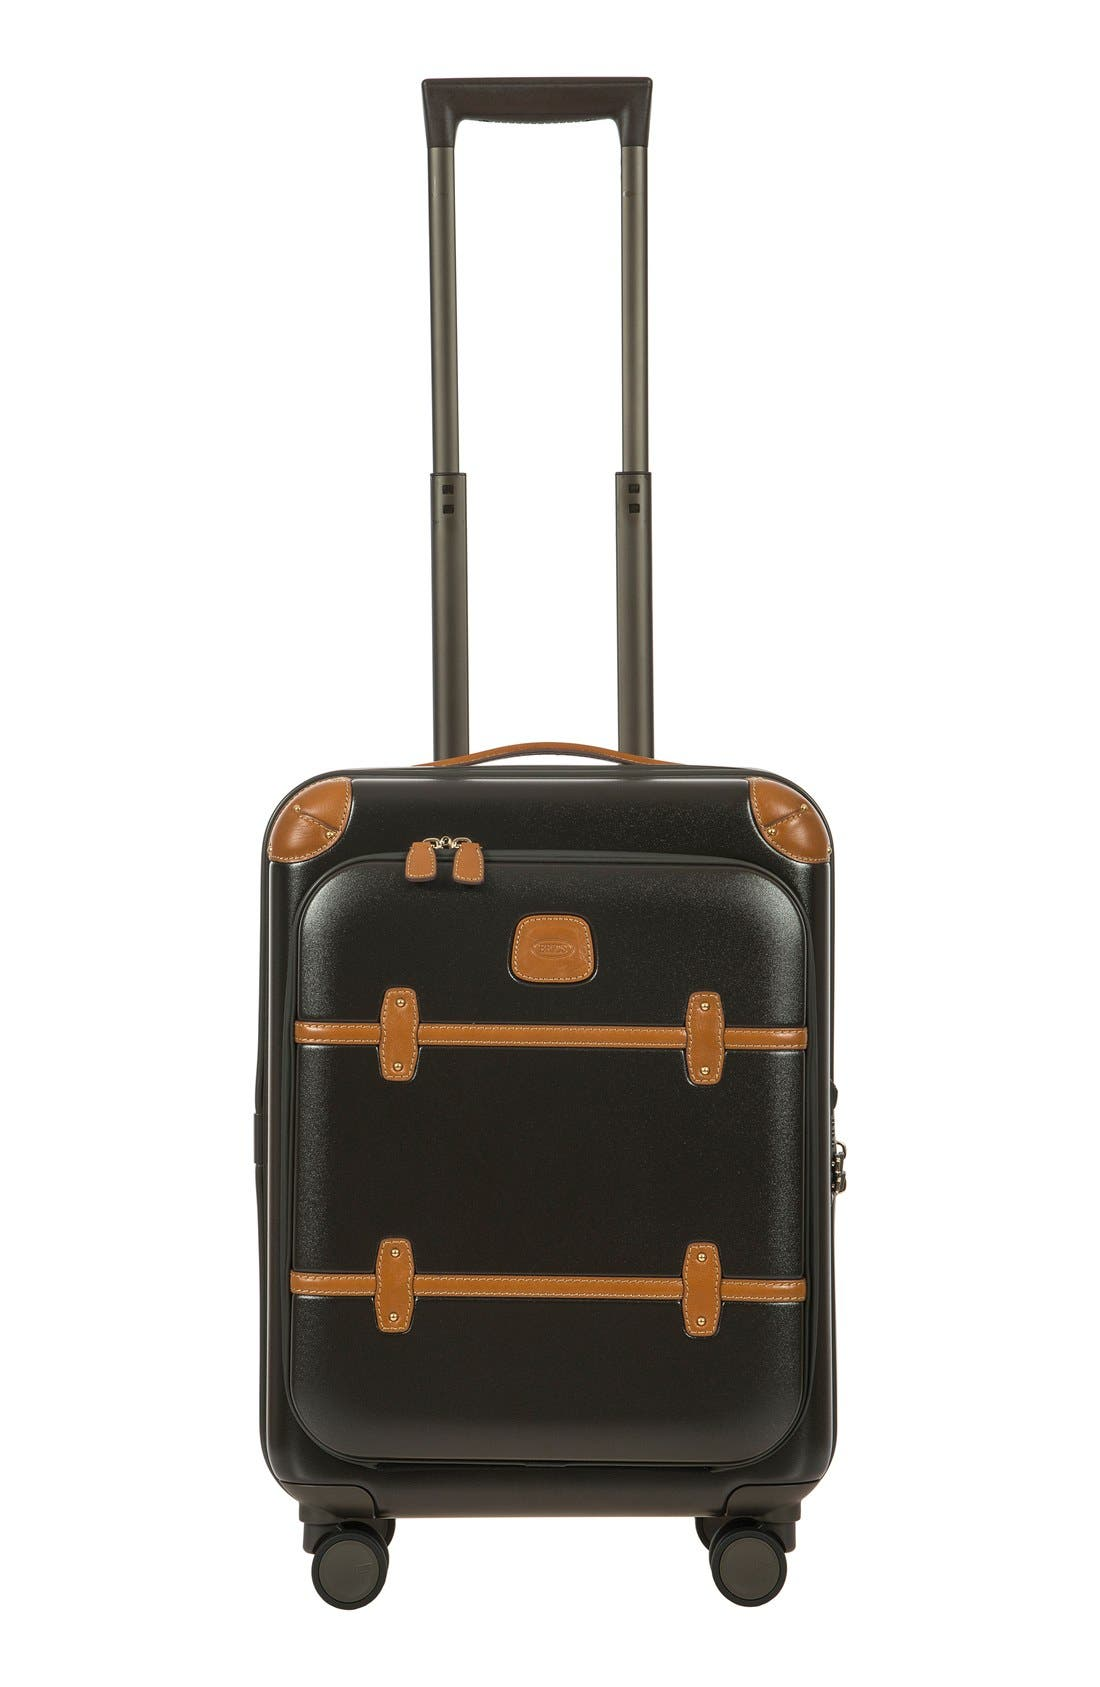 Main Image - Bric's Bellagio 2.0 21-Inch Rolling Carry-On